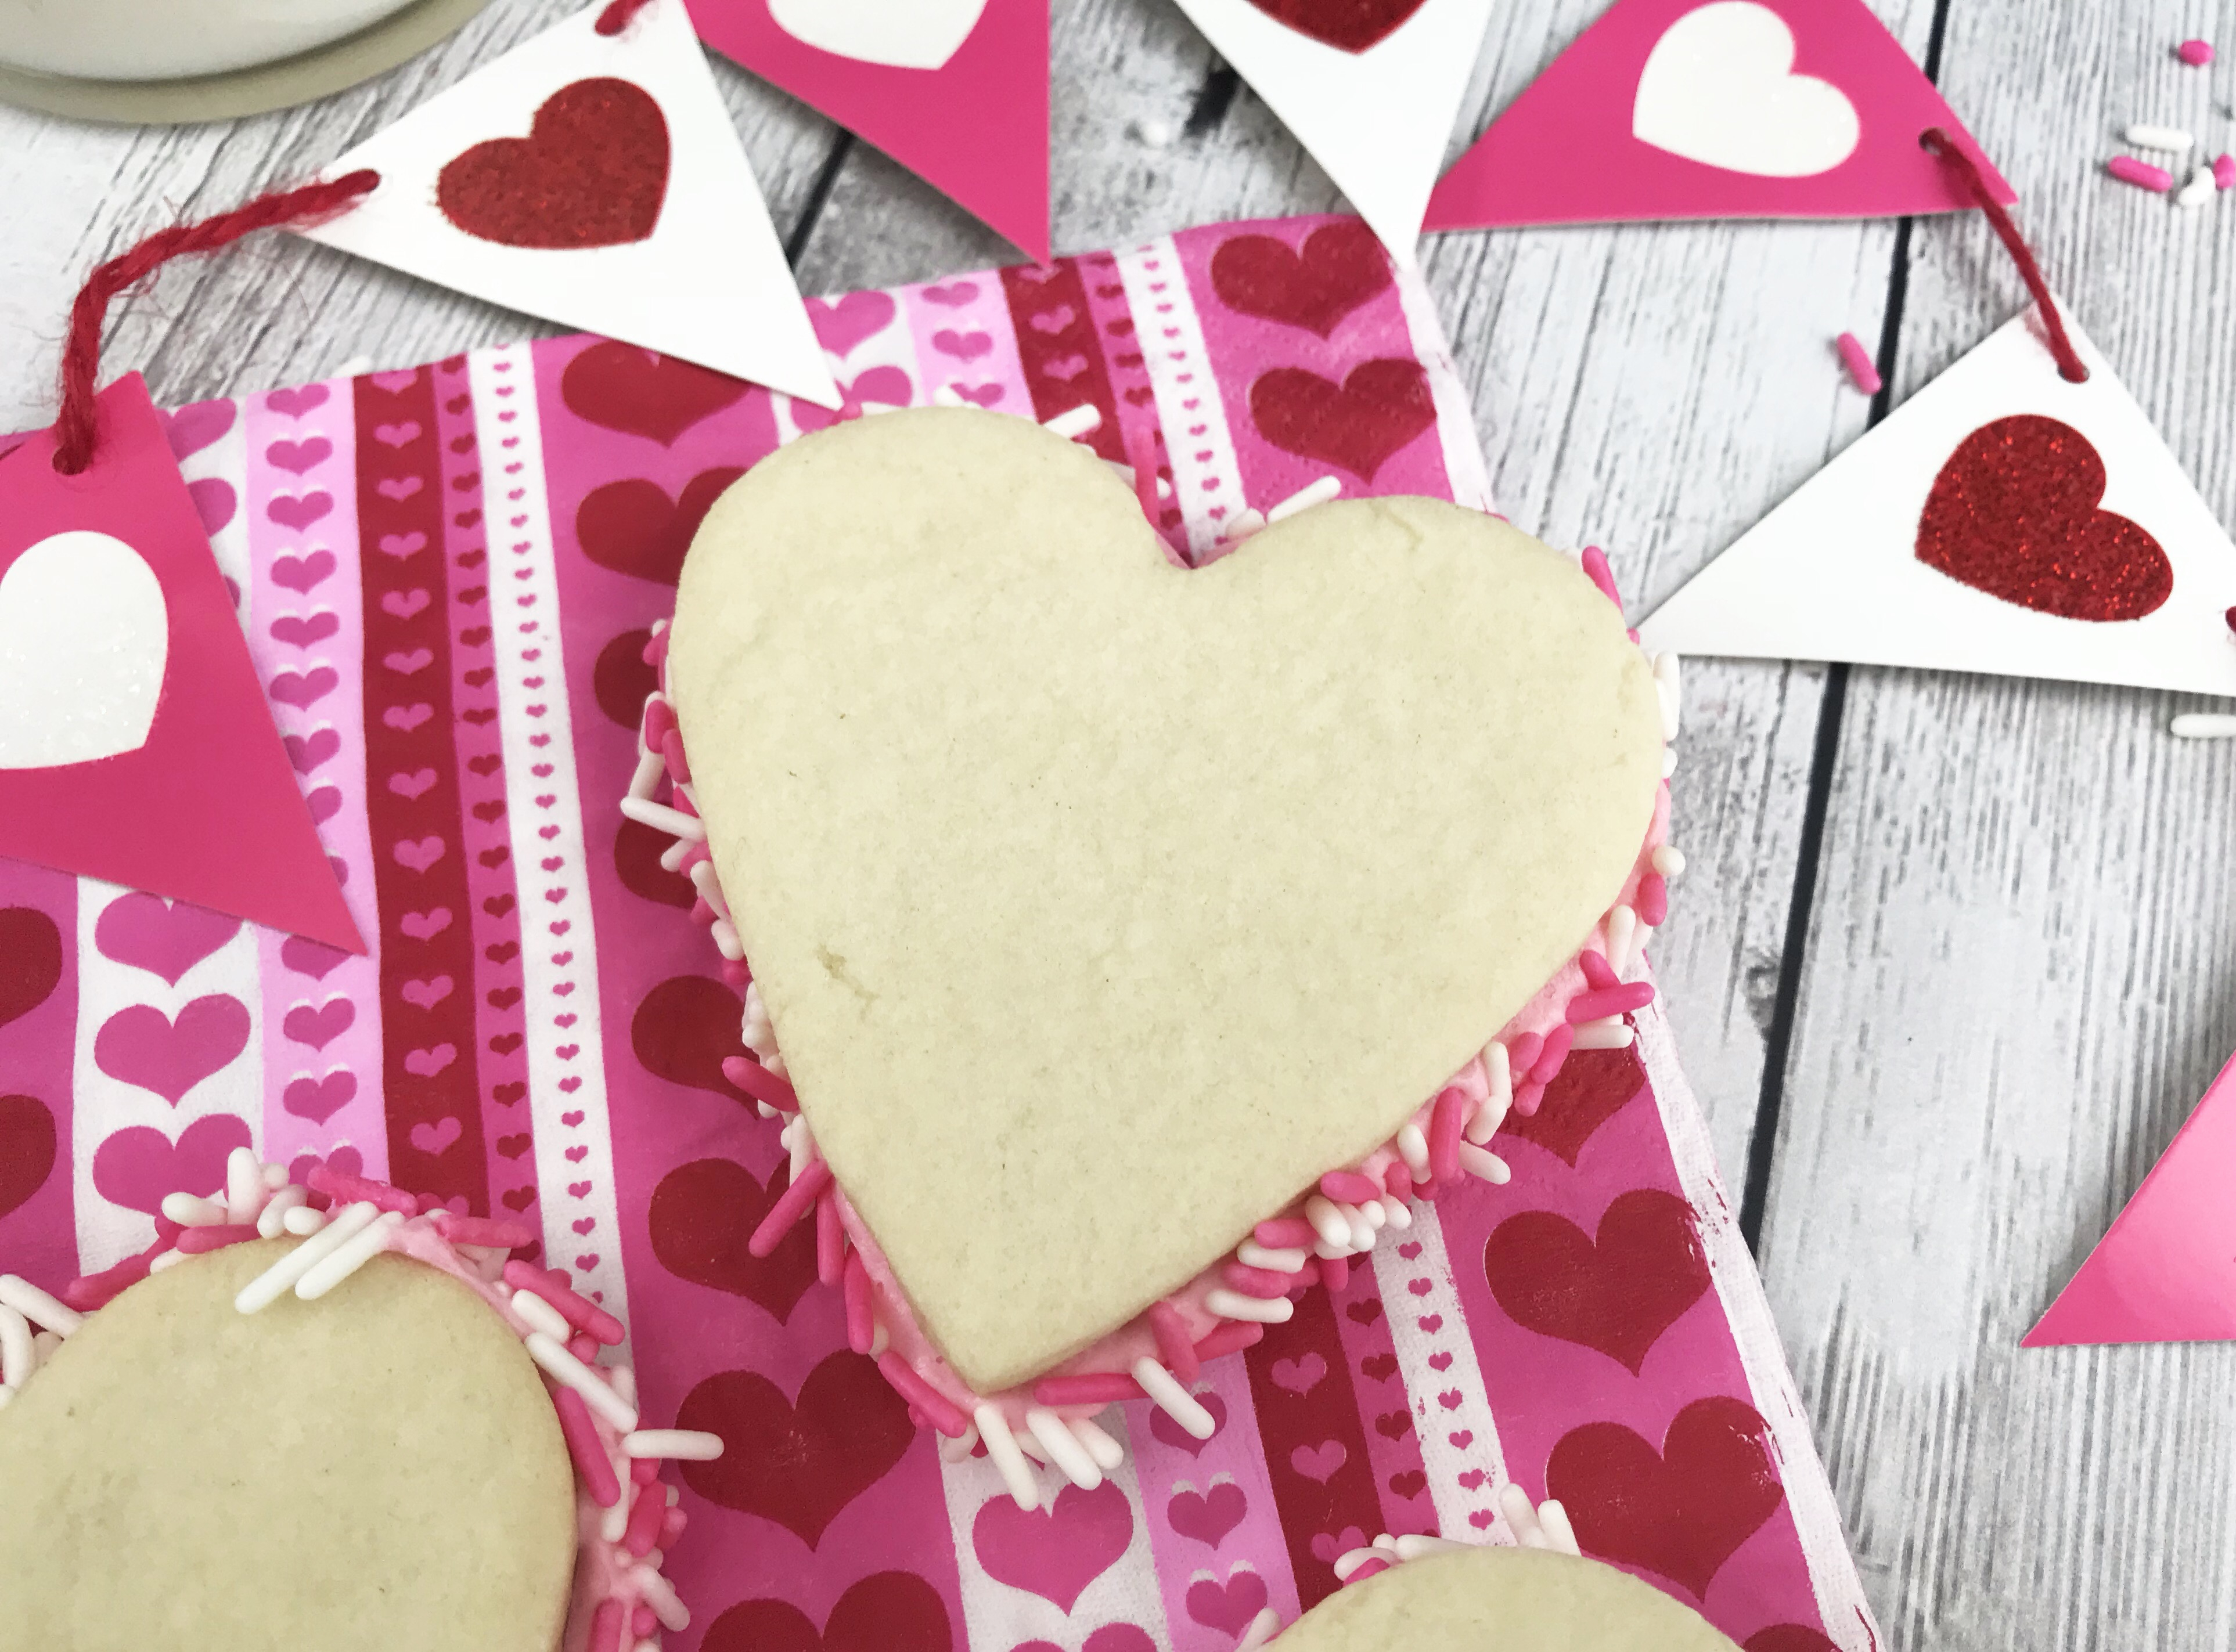 Valentine's Day Sandwich Cookies, Valentine's Day Sandwich Cookies, Heart Shaped Cookies for Valentine's Day, Valentine's Day Gifts, Valentine's Day Cookies